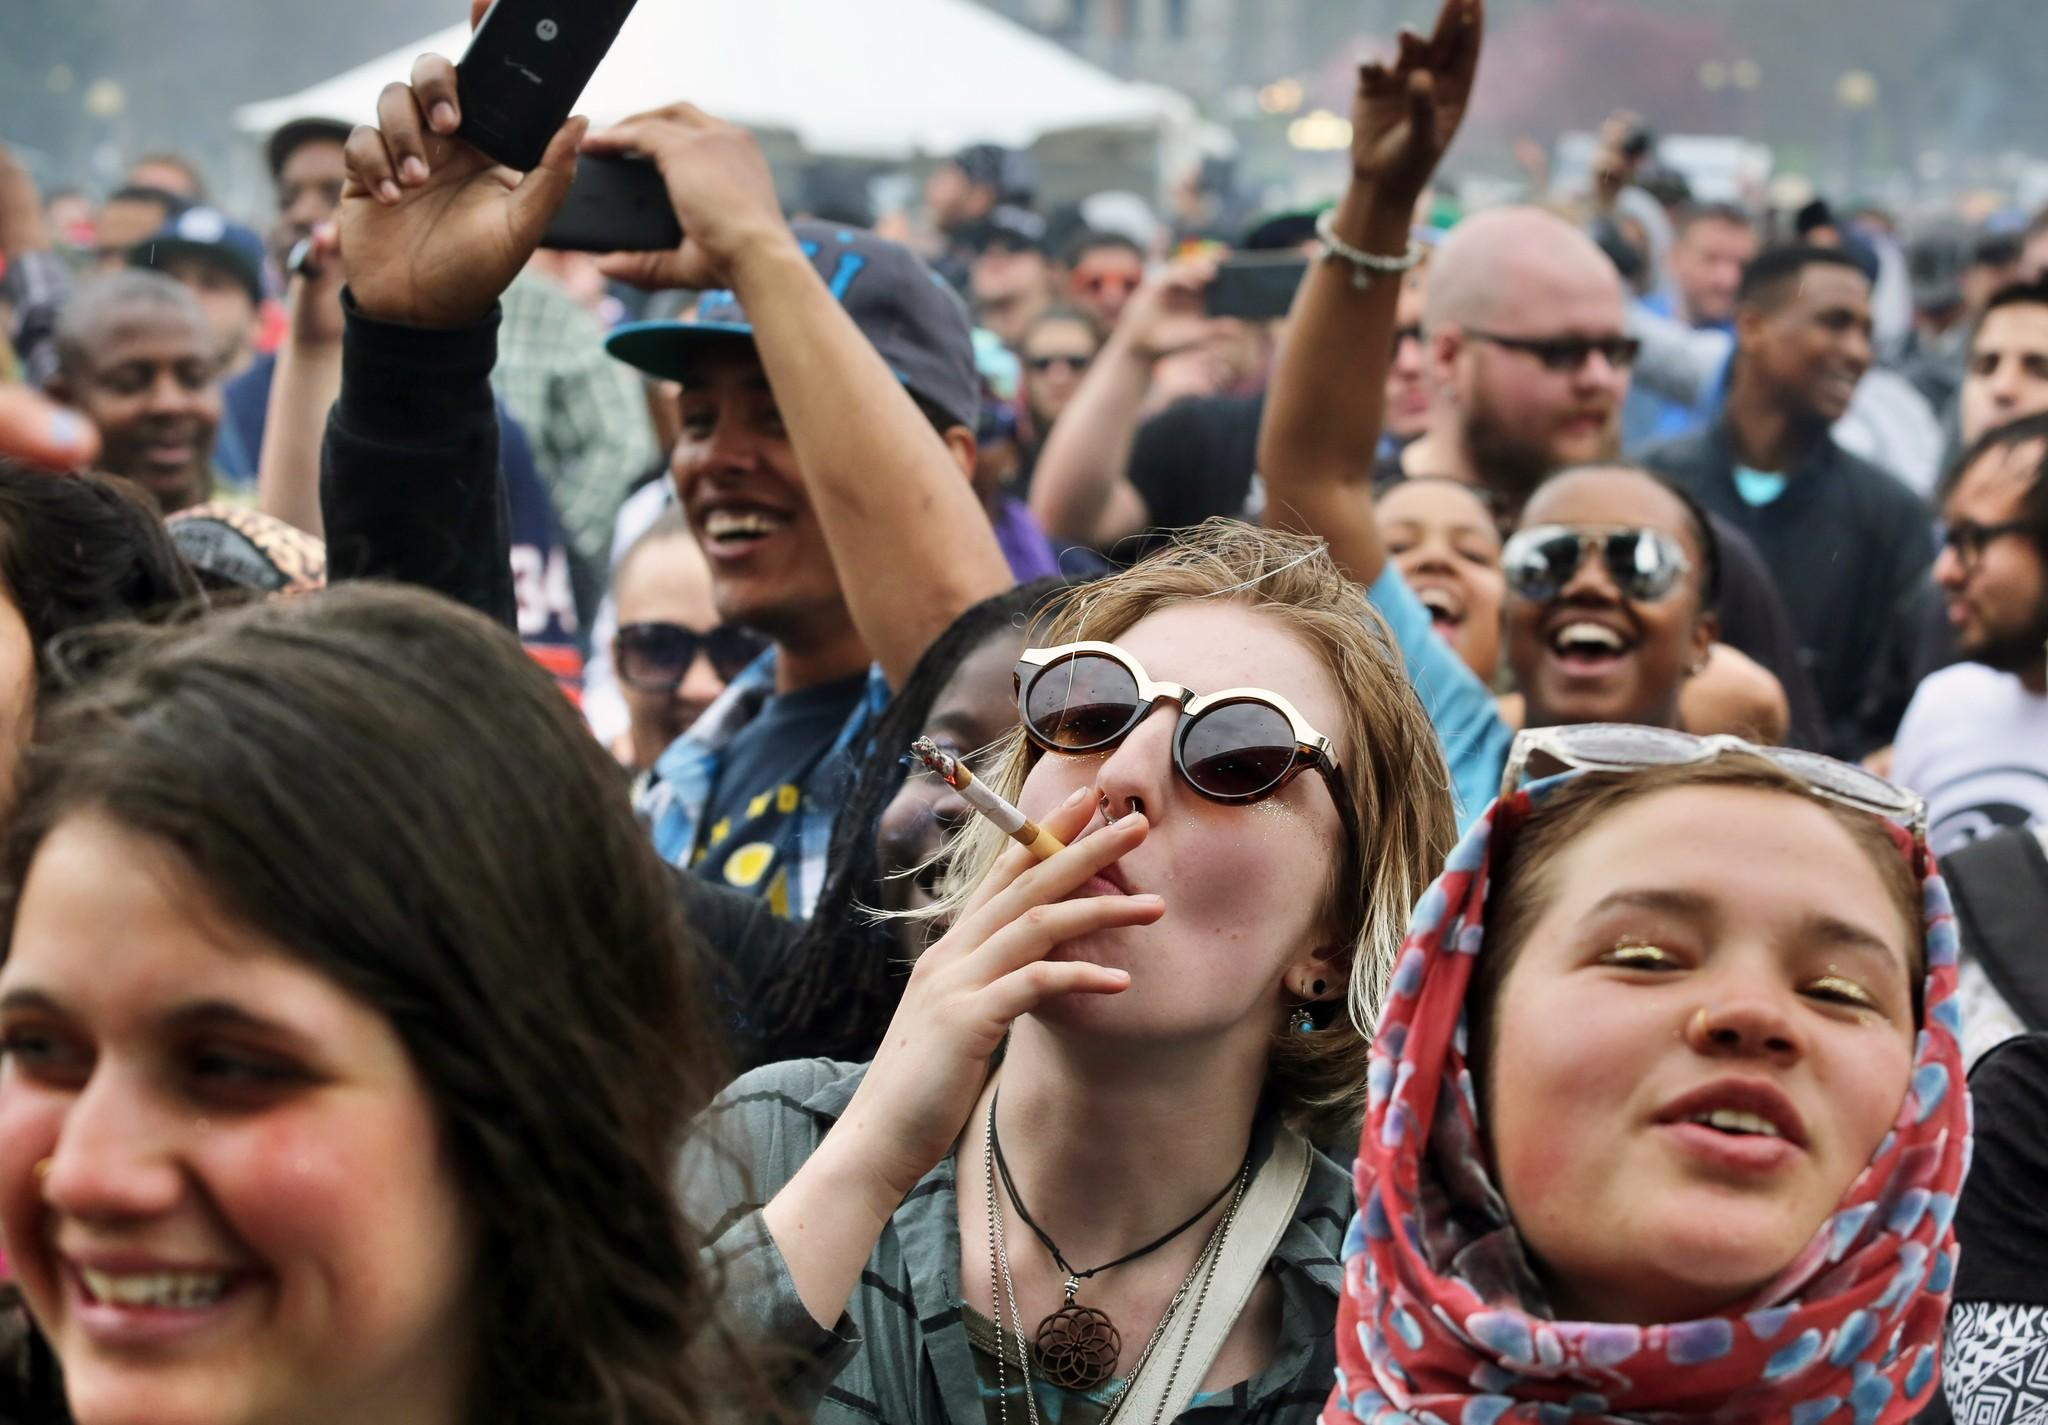 With the Colorado state capitol building visible in the background, party-goers dance to live music and smoke pot on the first of two days at the annual 4/20 marijuana festival in Denver on Saturday. The annual event is the first 420 marijuana celebration since retail marijuana stores began selling in January.